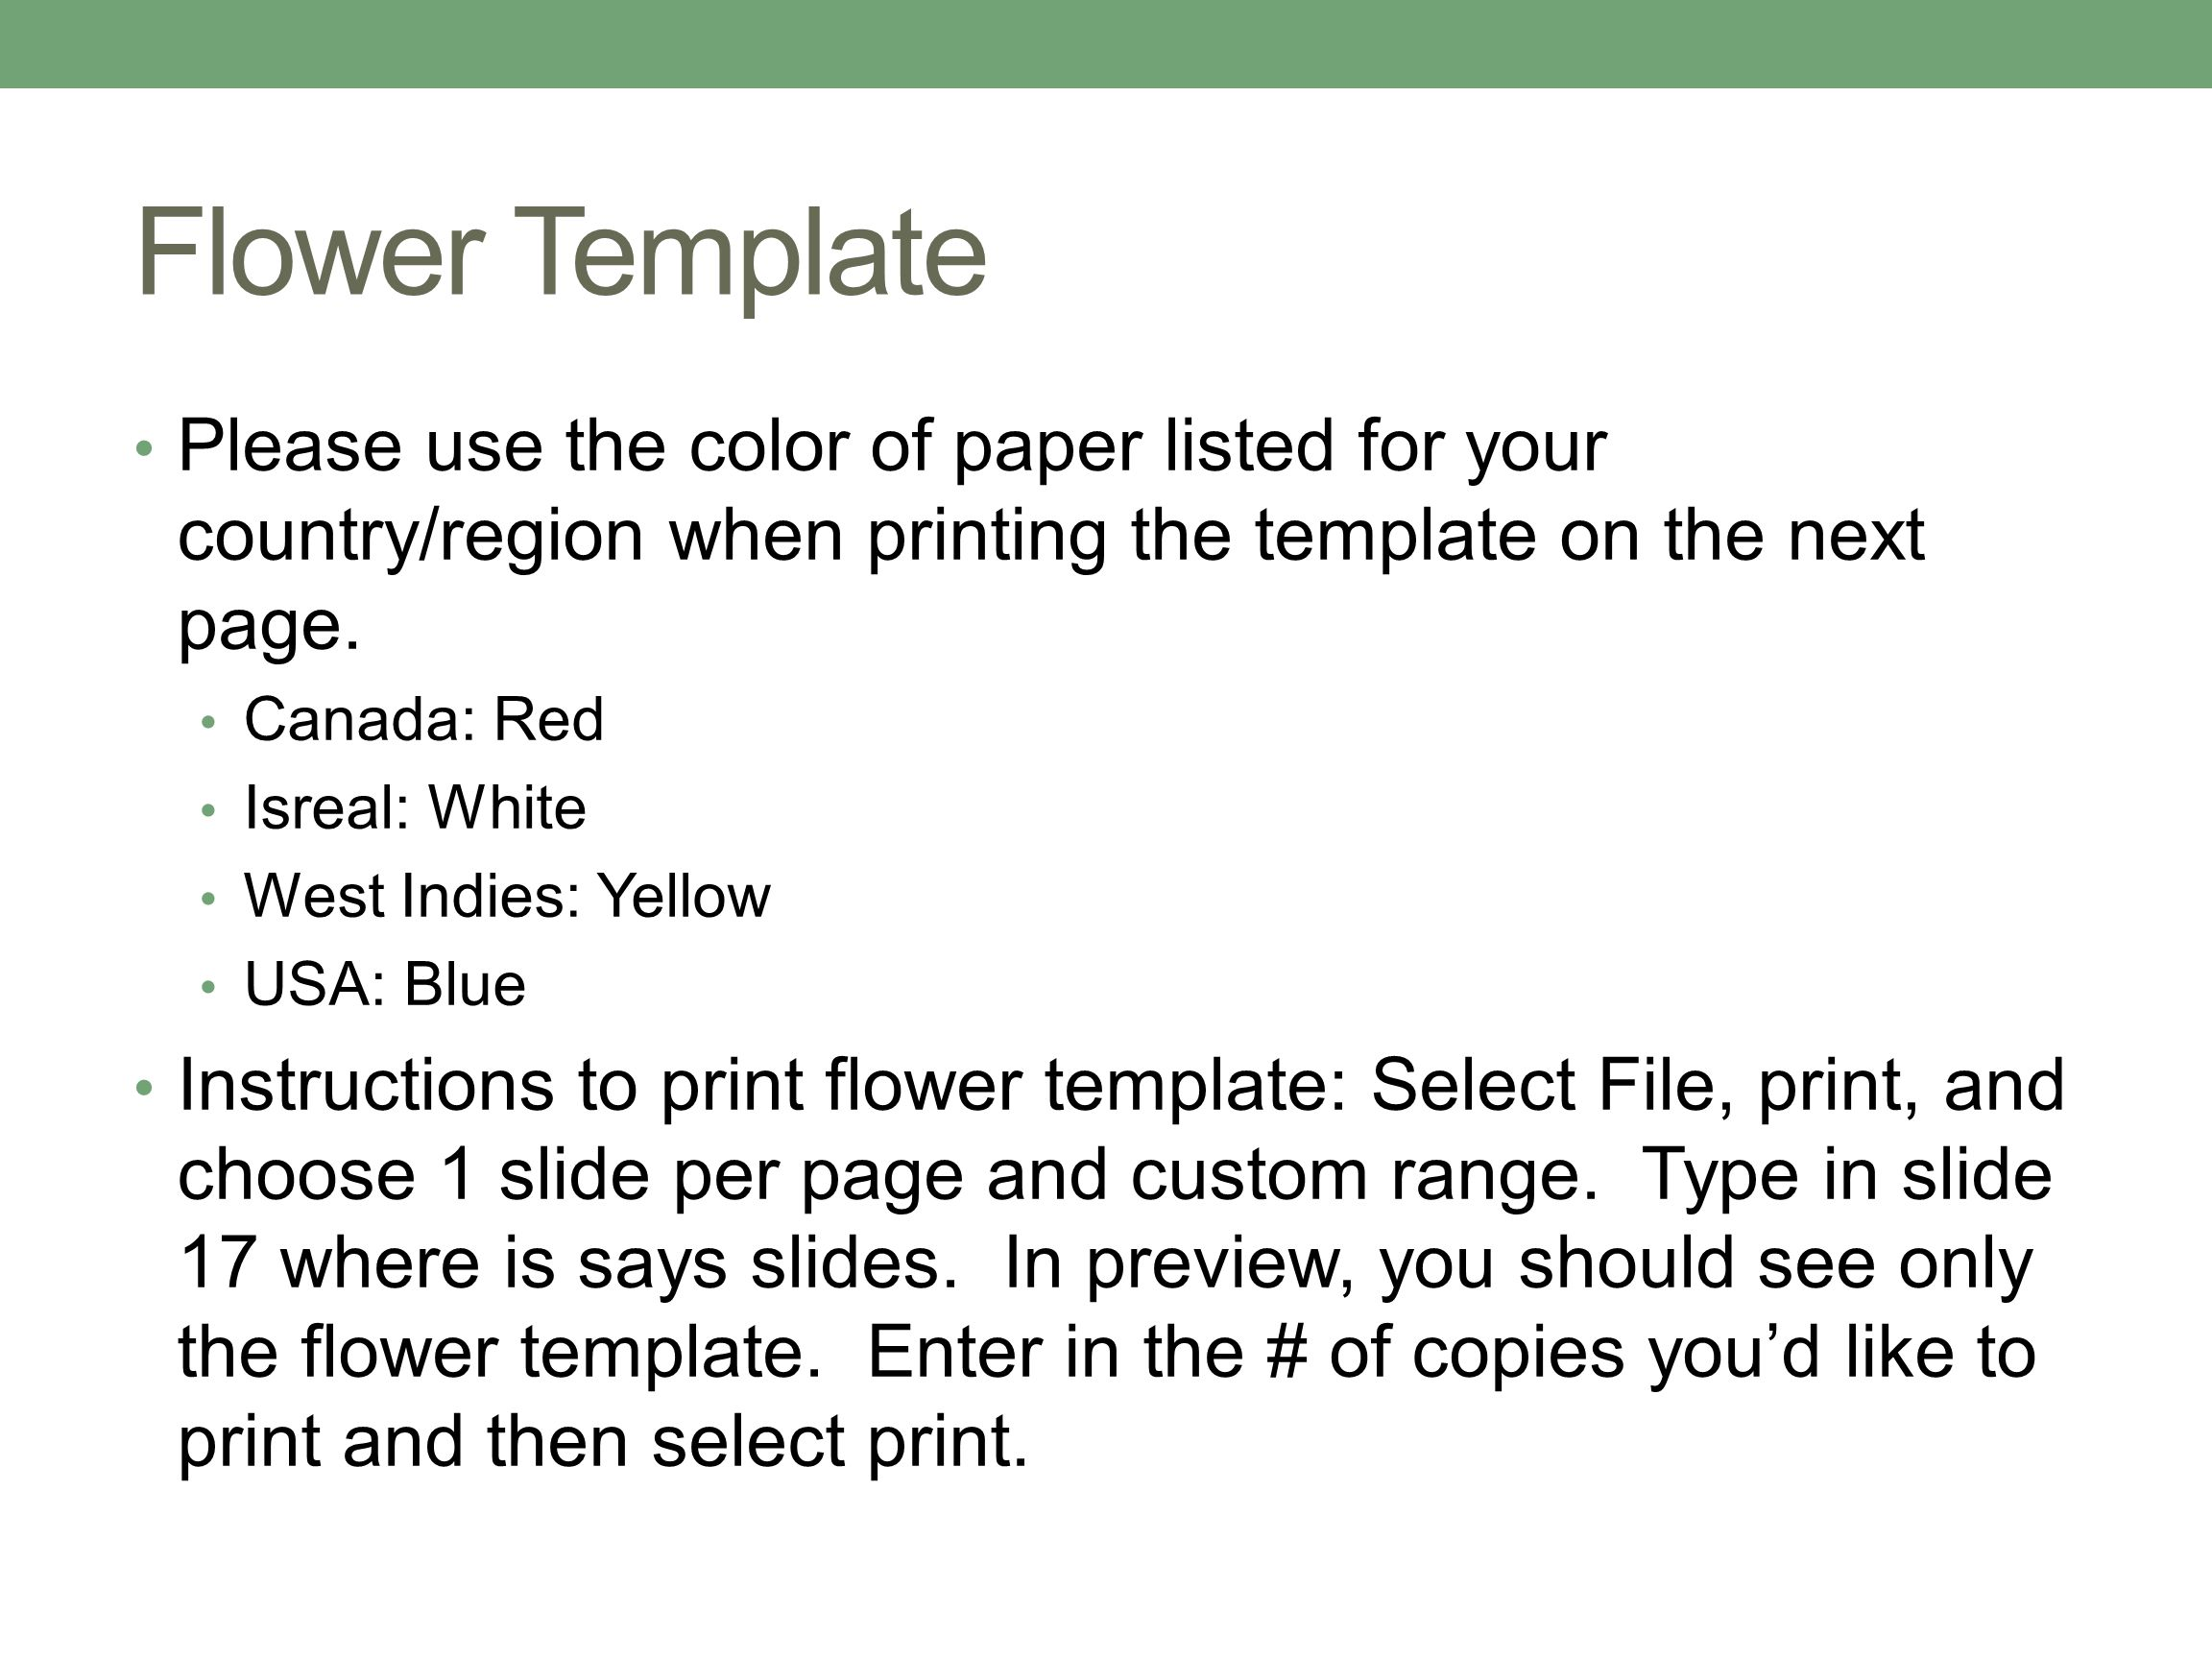 Flower Template Please use the color of paper listed for your country/region when printing the template on the next page.